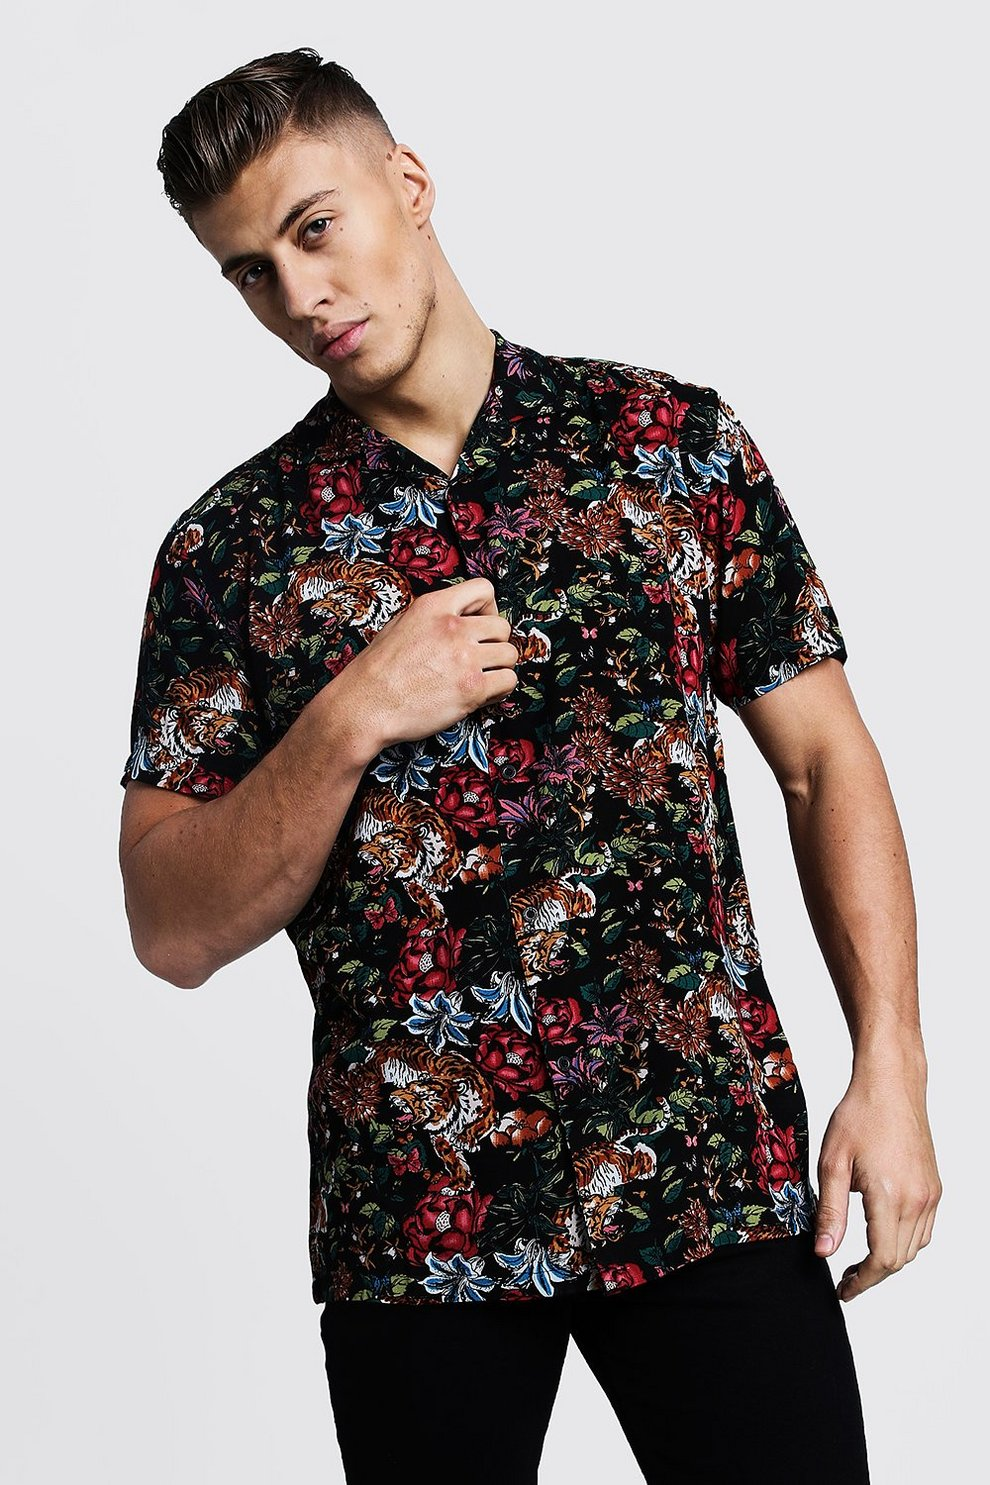 898f5041 Mens Black Floral Tiger Print Short Sleeve Revere Shirt. Hover to zoom